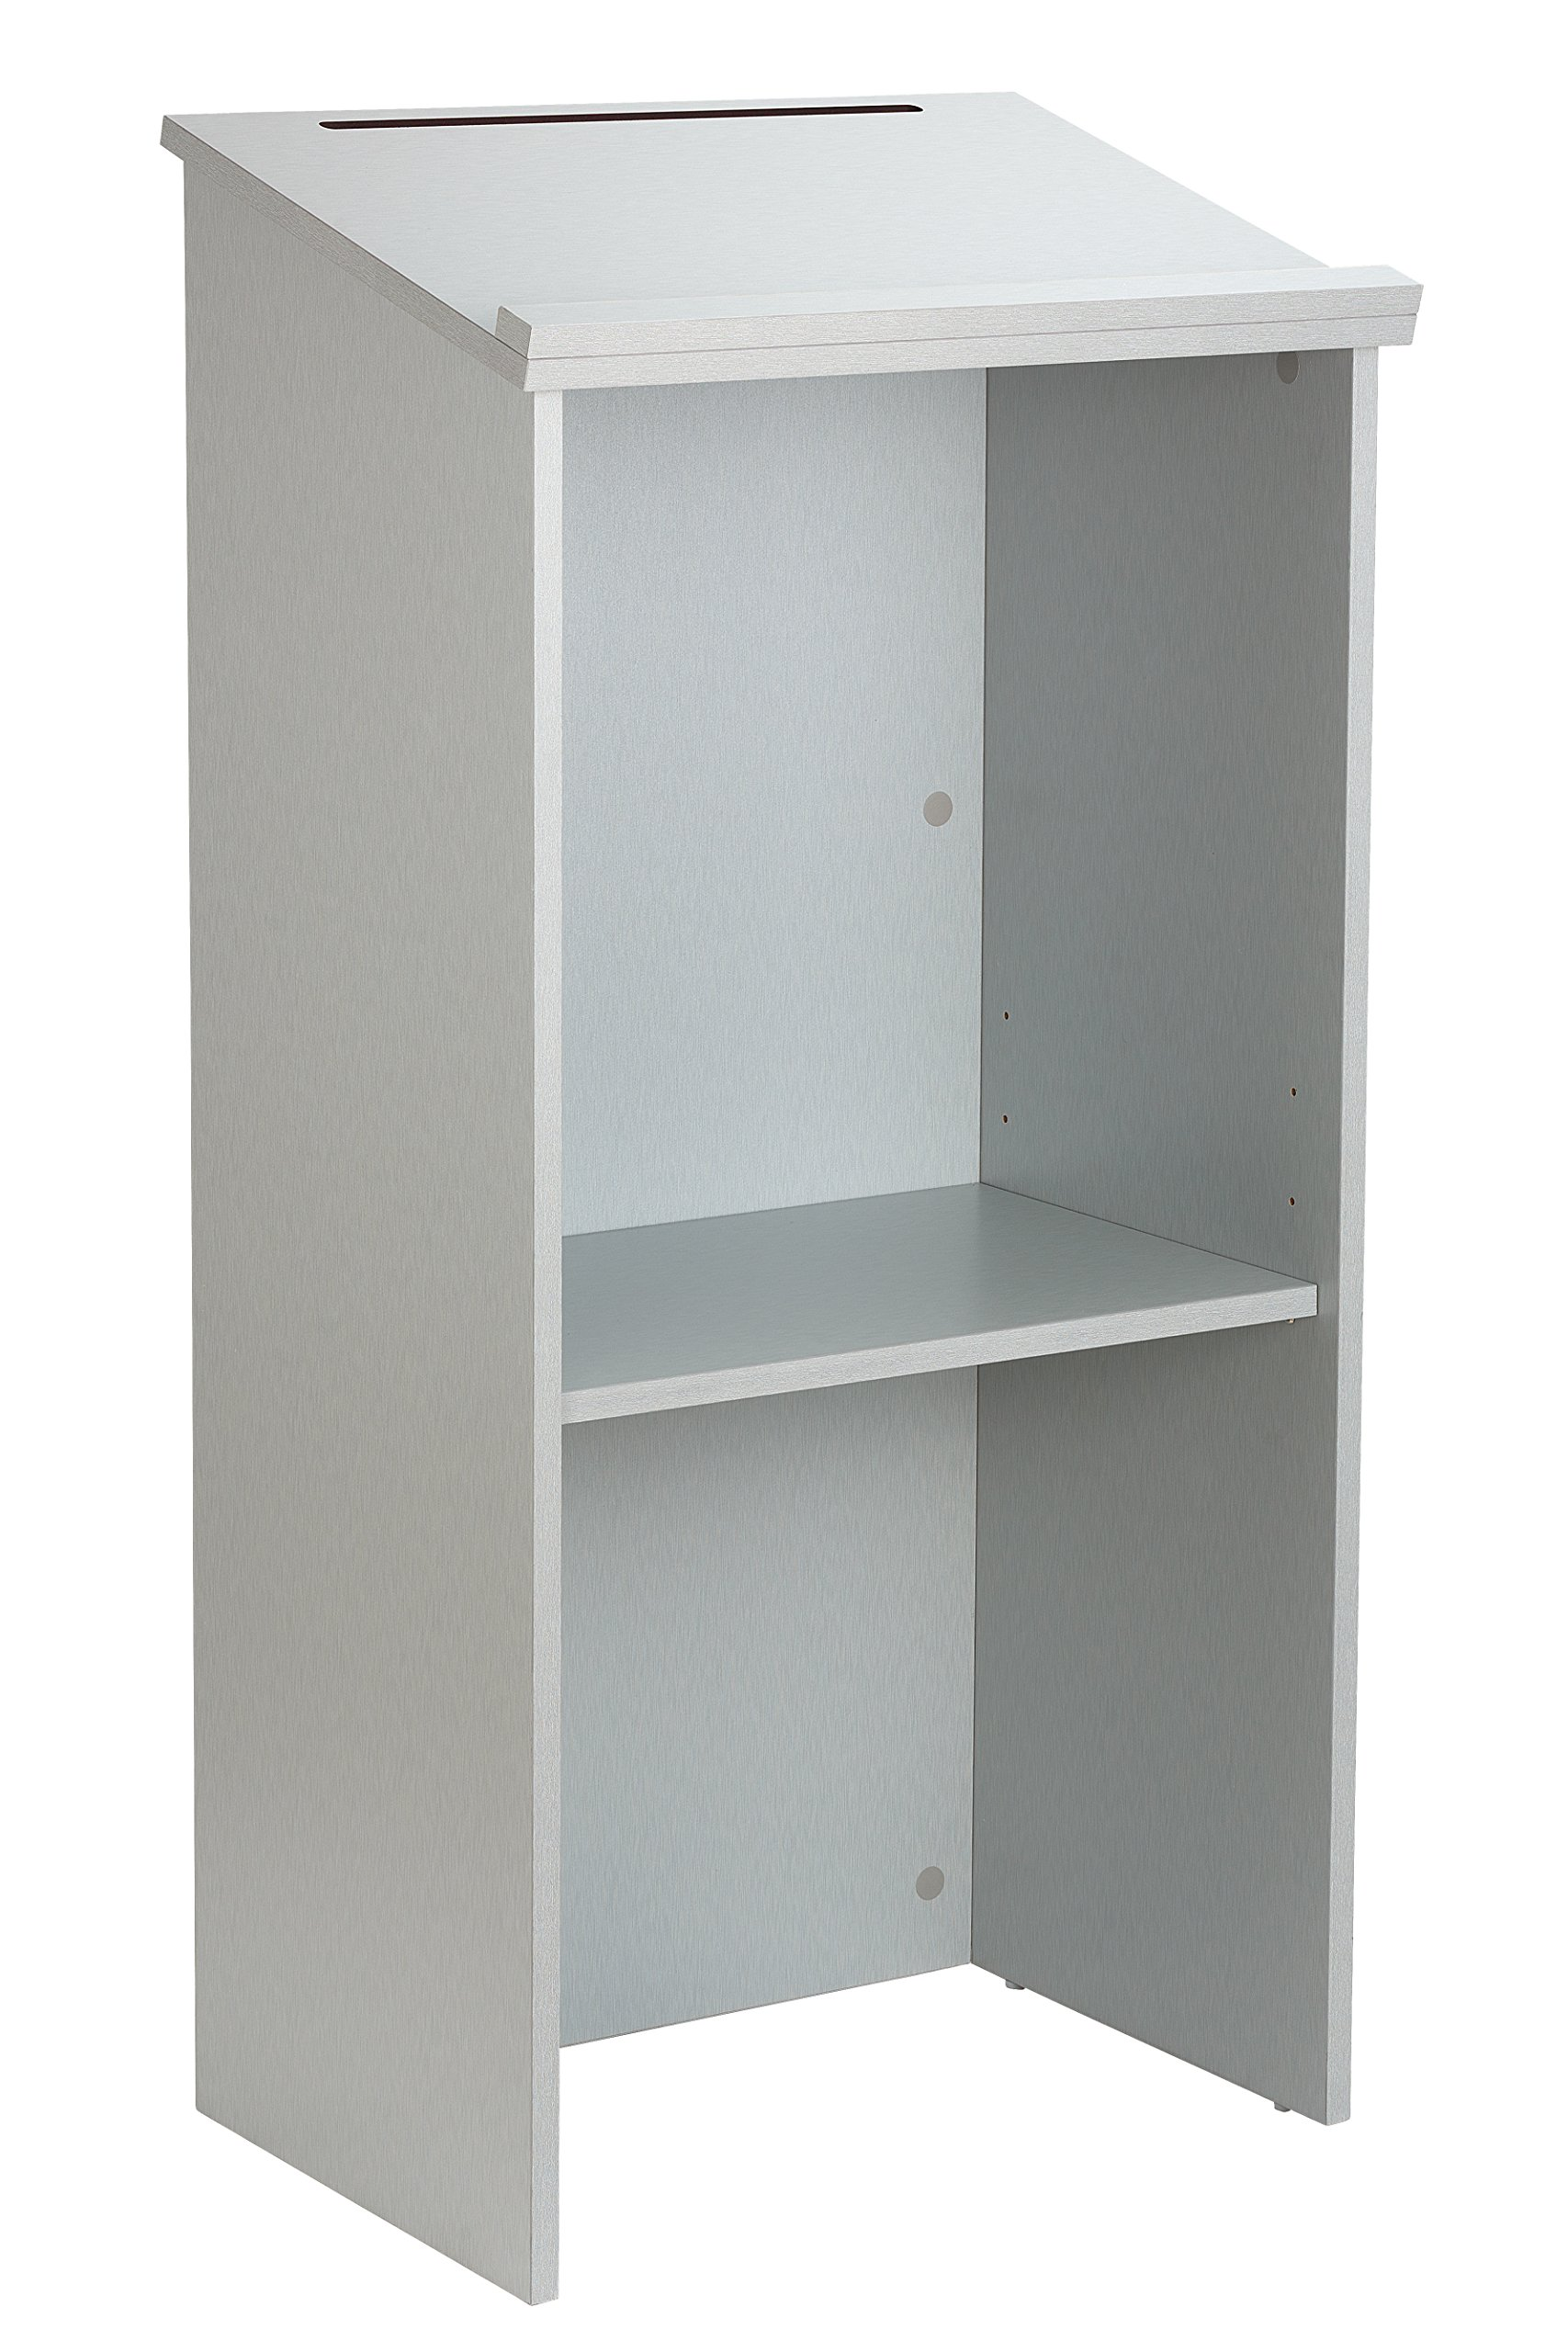 AdirOffice Stand up, Floor-Standing Podium, Lectern with Adjustable Shelf and Pen/Pencil Tray (Silver Grain)